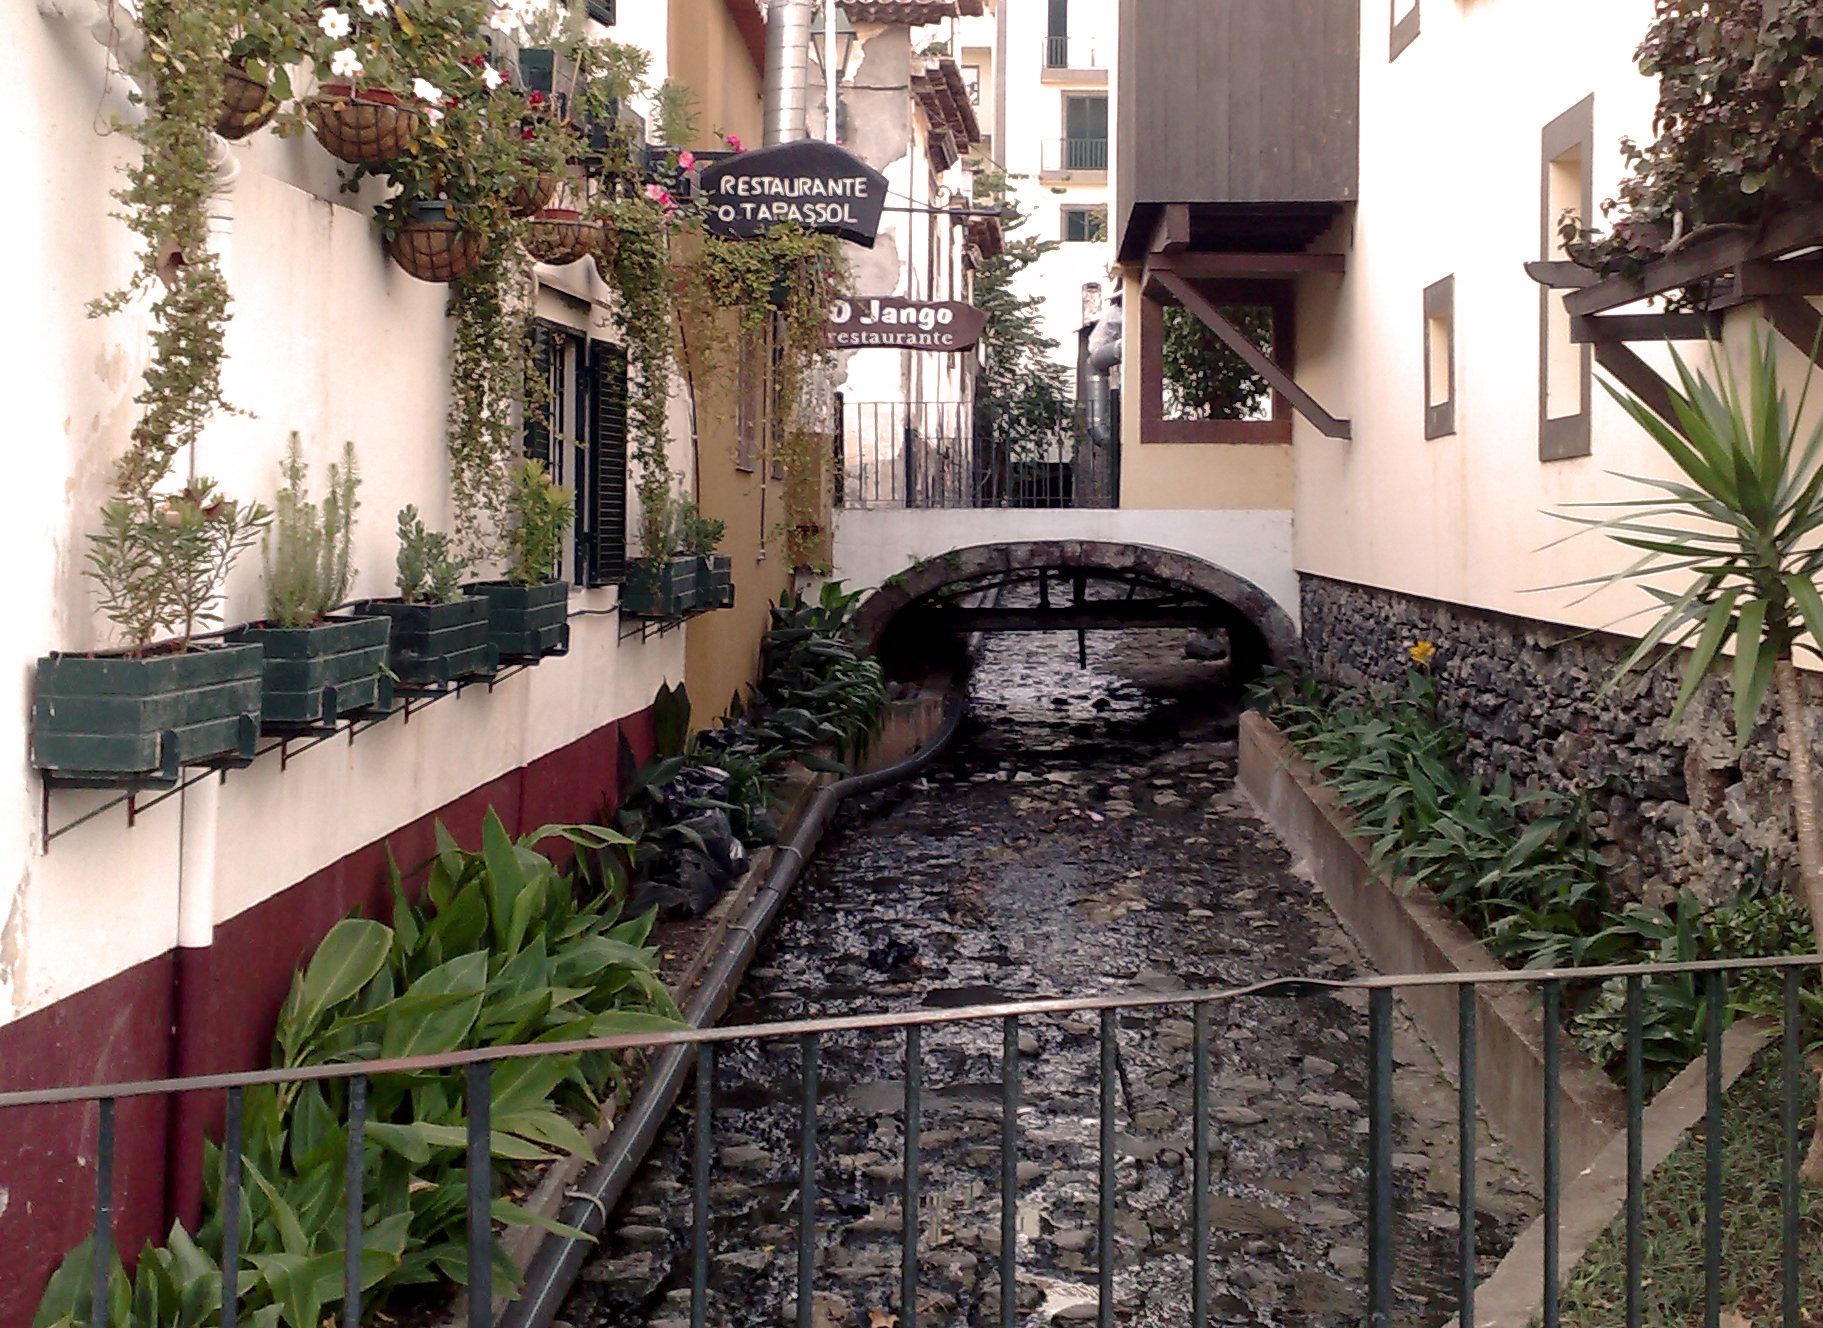 Bridge_over_stream_and_cafes,_Funchal,_Madeira-2.jpg